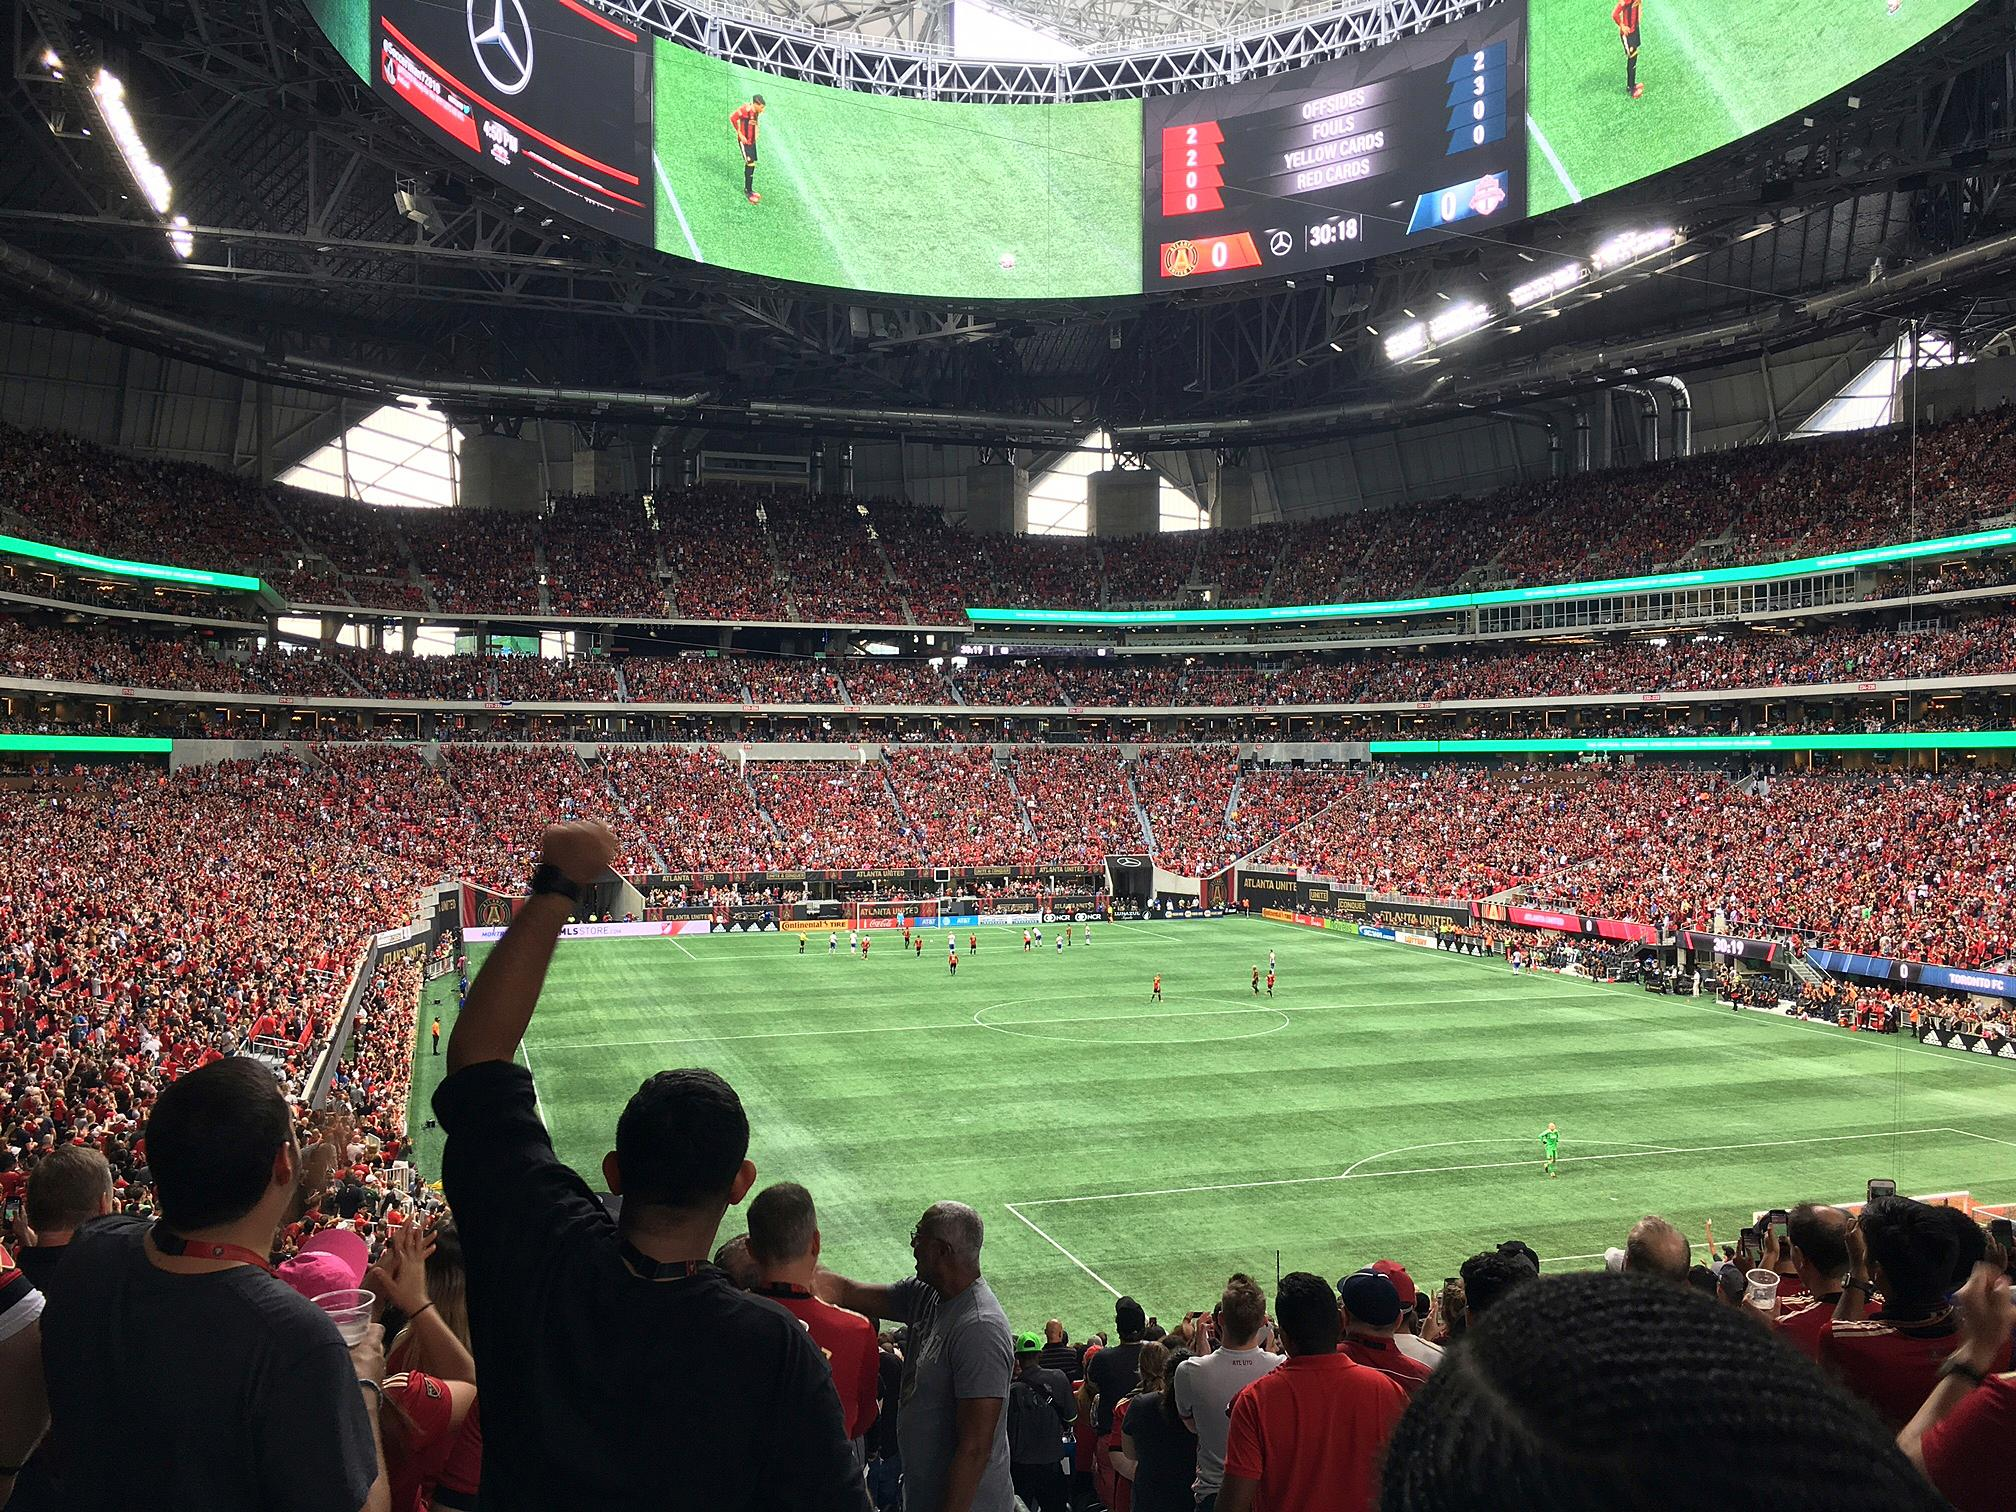 In this Oct. 22, 2017 photo, the crowd cheers as Atlanta United goal takes on Toronto FC in an MLS soccer match in Atlanta. Welcome to Atlanta, soccer's newest hotbed, which amazingly enough has sprouted up in a city known for its fickle sports fans and plenty of heartbreak from its teams.  (AP Photo/Paul Newberry)